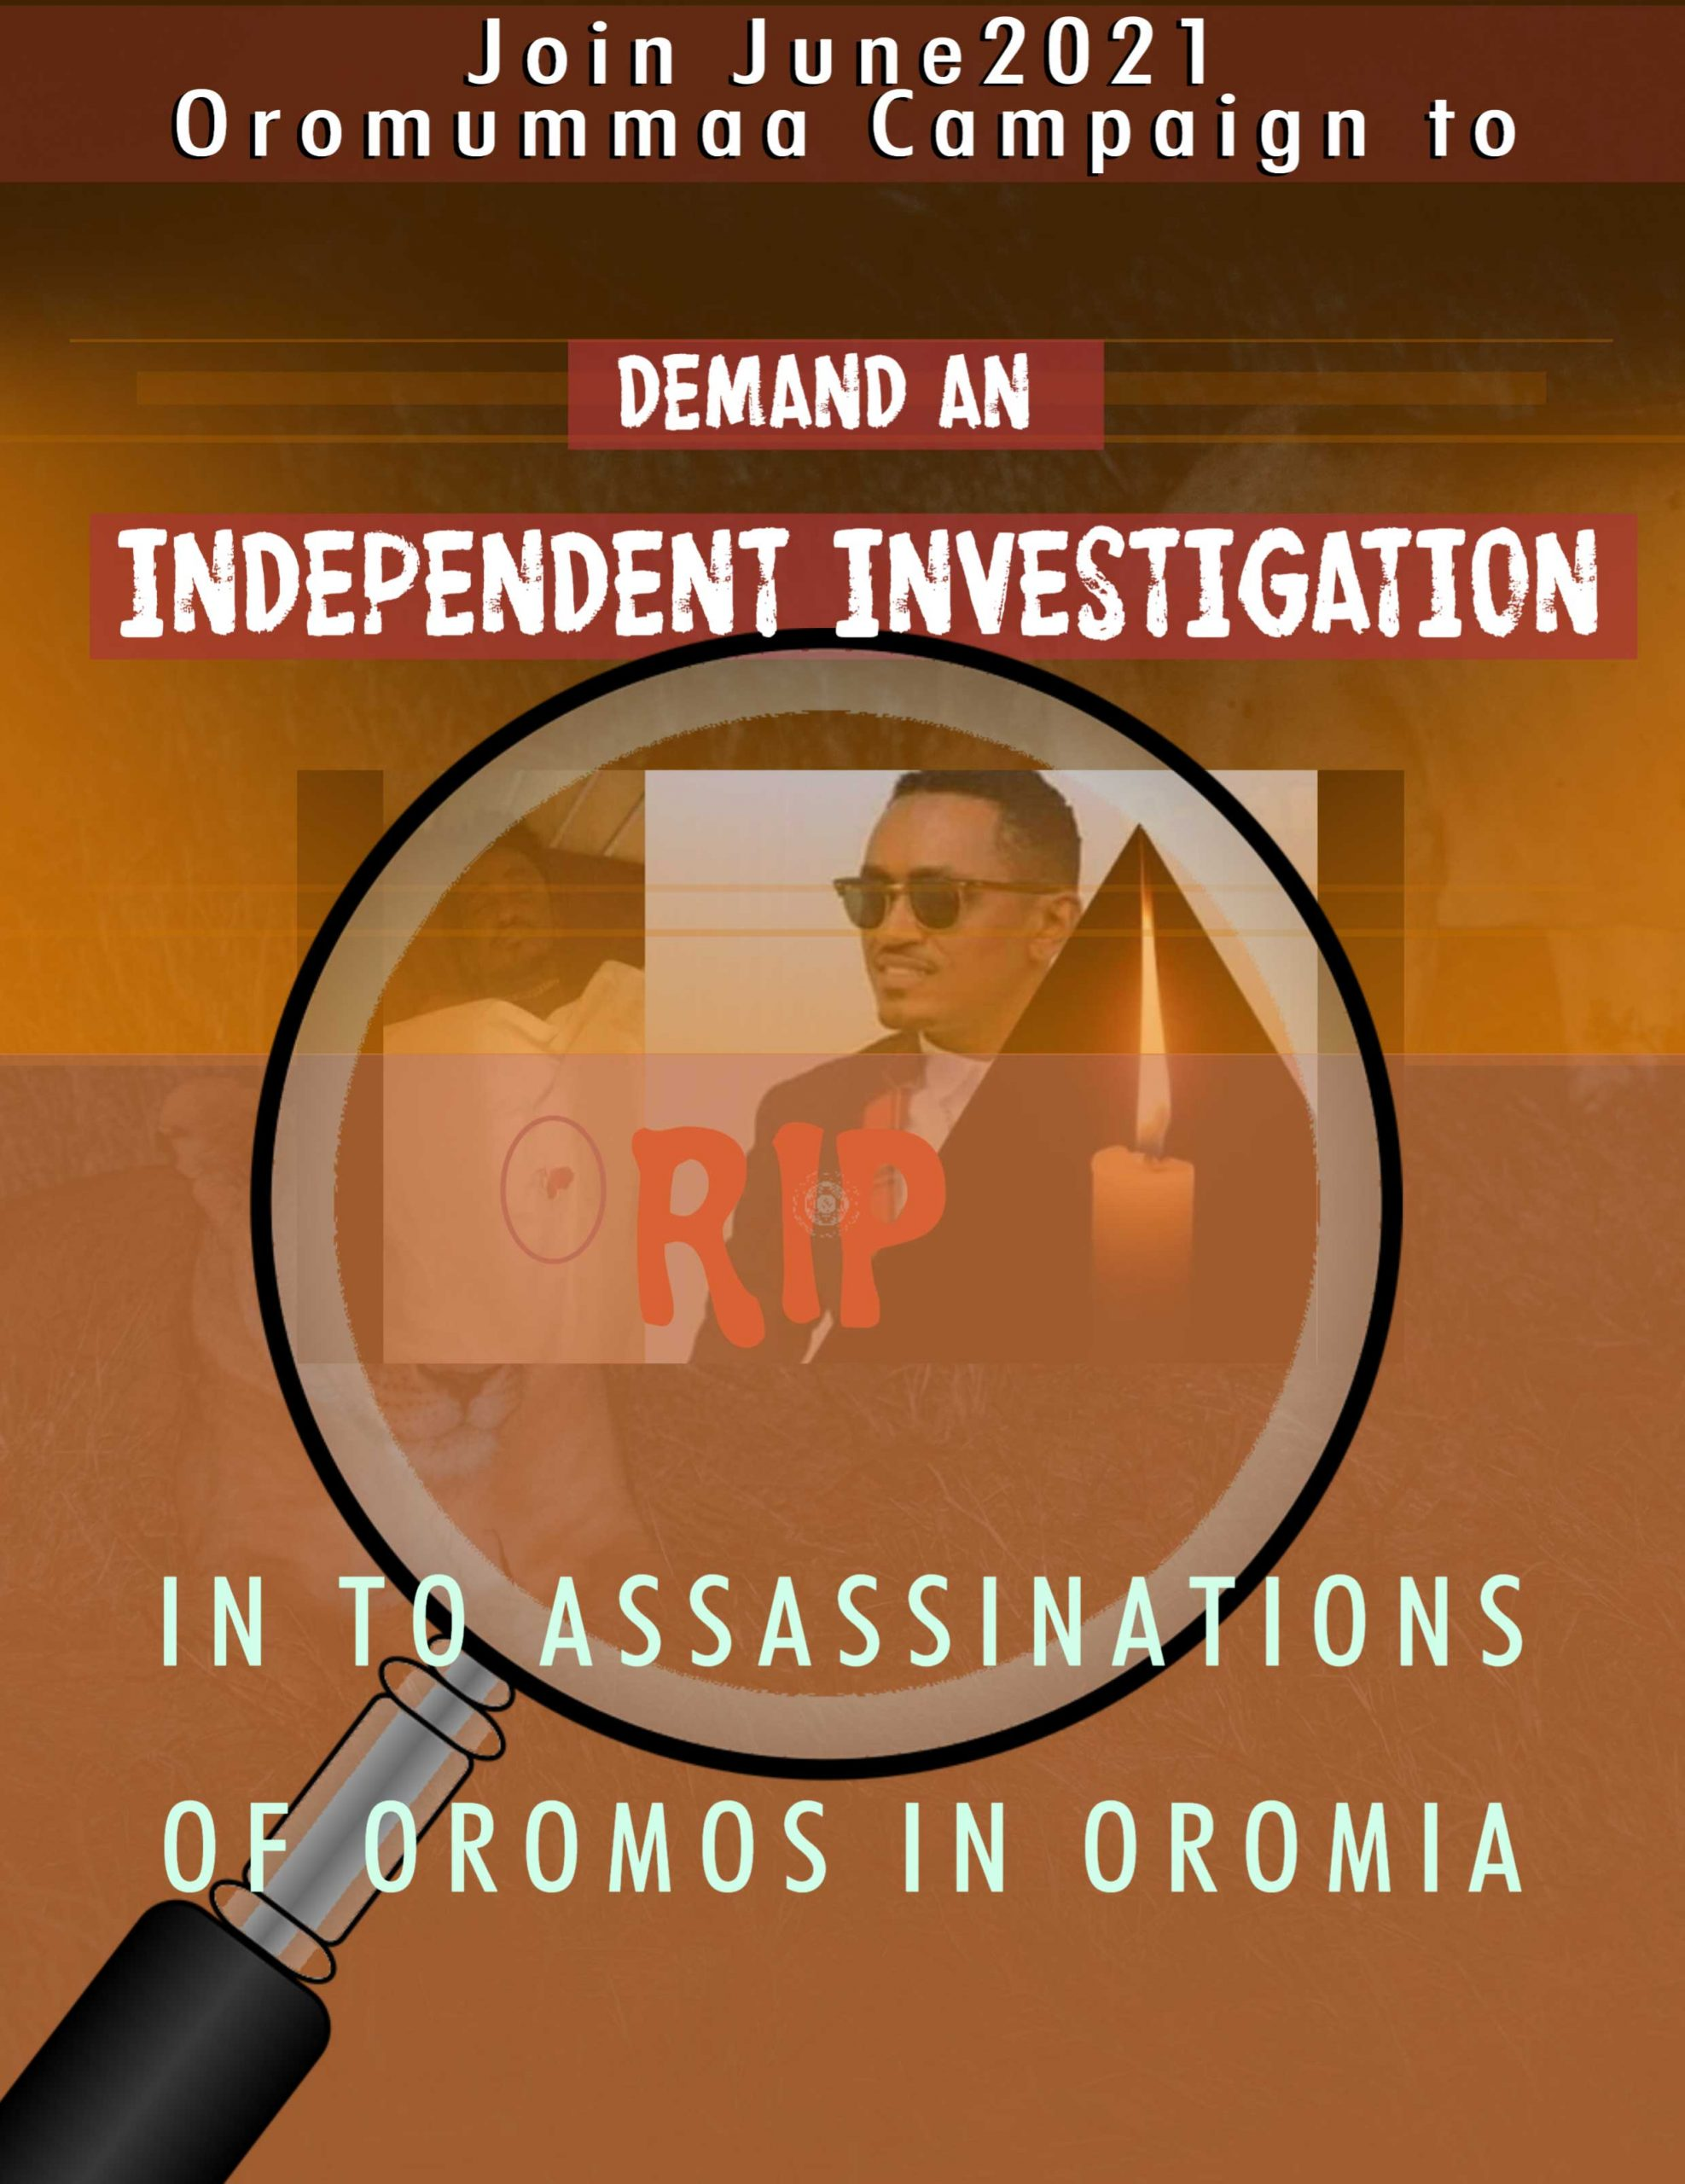 Demand an Independent Investigation into Assassinations of Oromos in Oromia